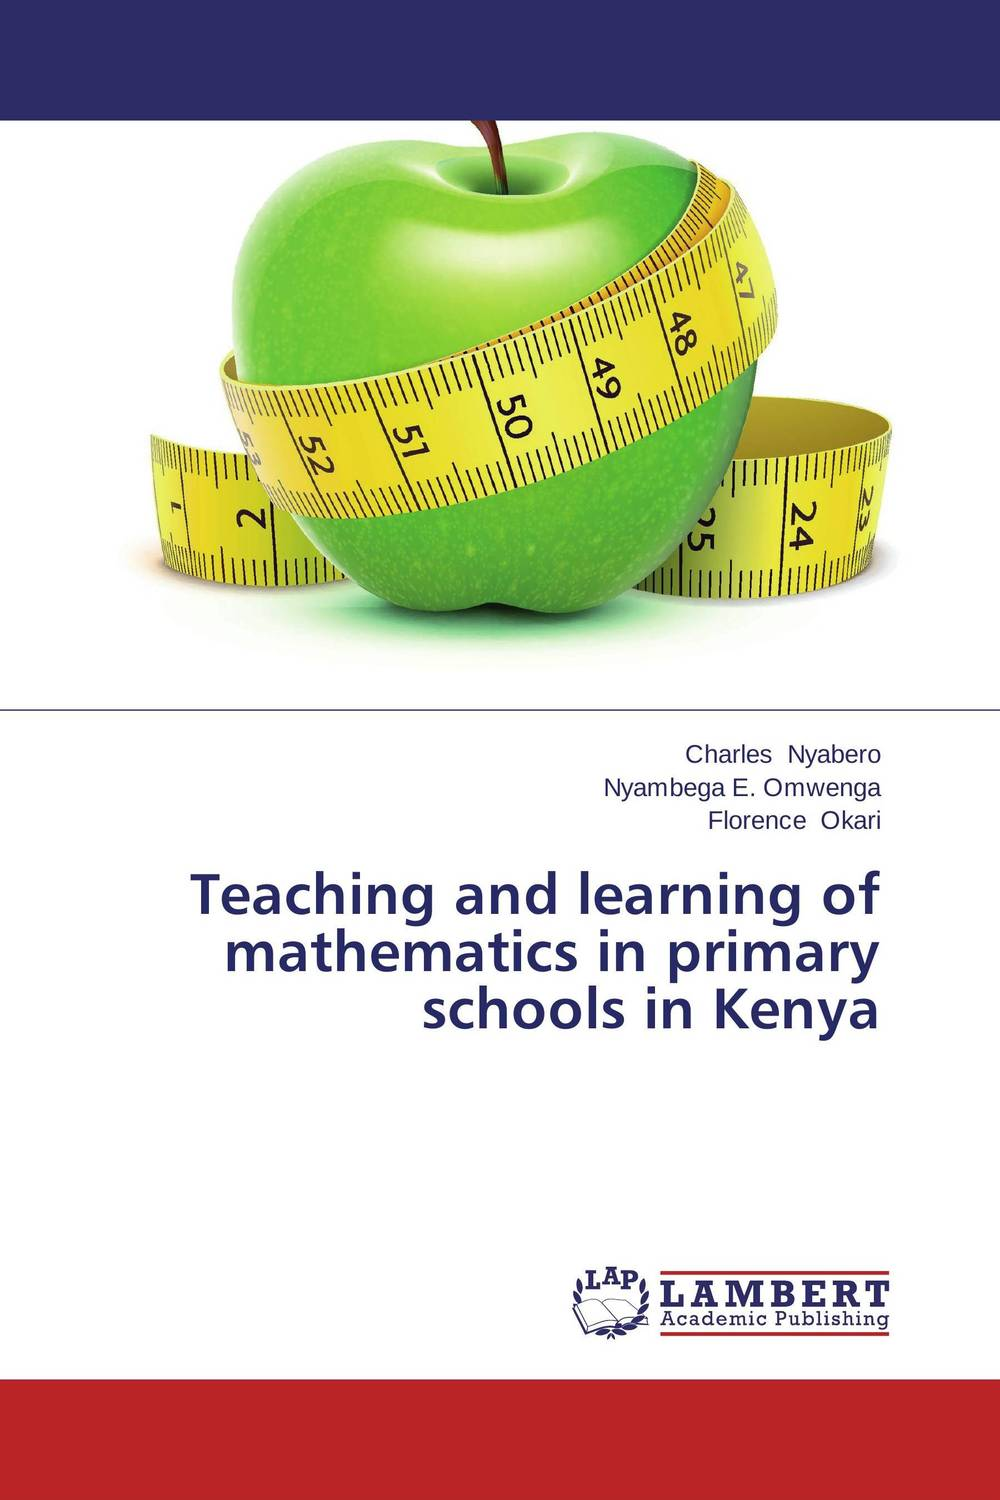 Teaching and learning of mathematics in primary schools in  Kenya clock table model teacher demonstration with primary school mathematics science and education equipment three needle linkage